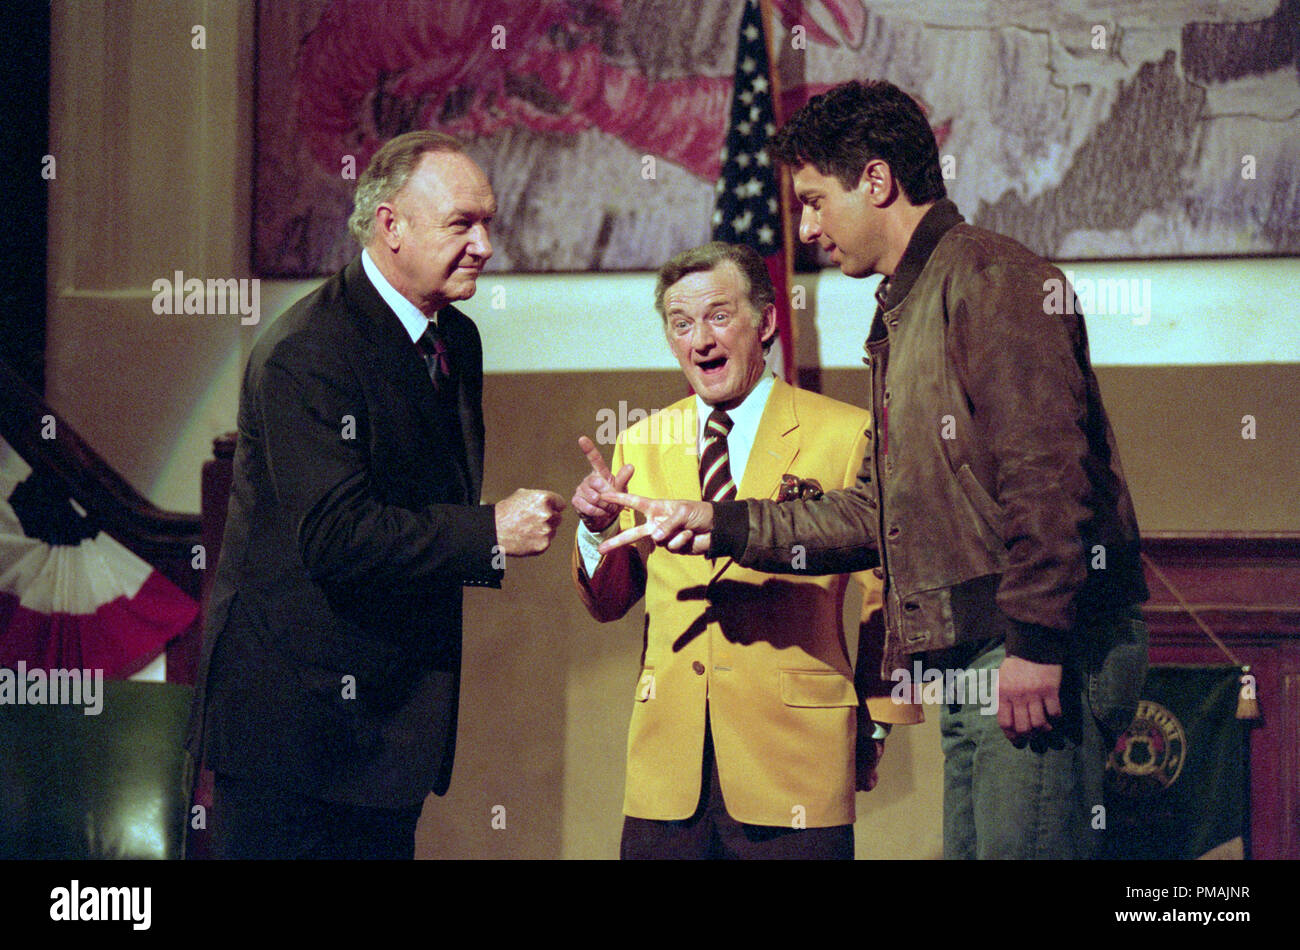 A game of 'Rock/Paper/Scissors' decides who goes first in a crucial mayoral debate between Cole (Gene Hackman, left) and Handy (Ray Romano), as town elder Morris Gutman (Wayne Robson) officiates in WELCOME TO MOOSEPORT. (2004) - Stock Image